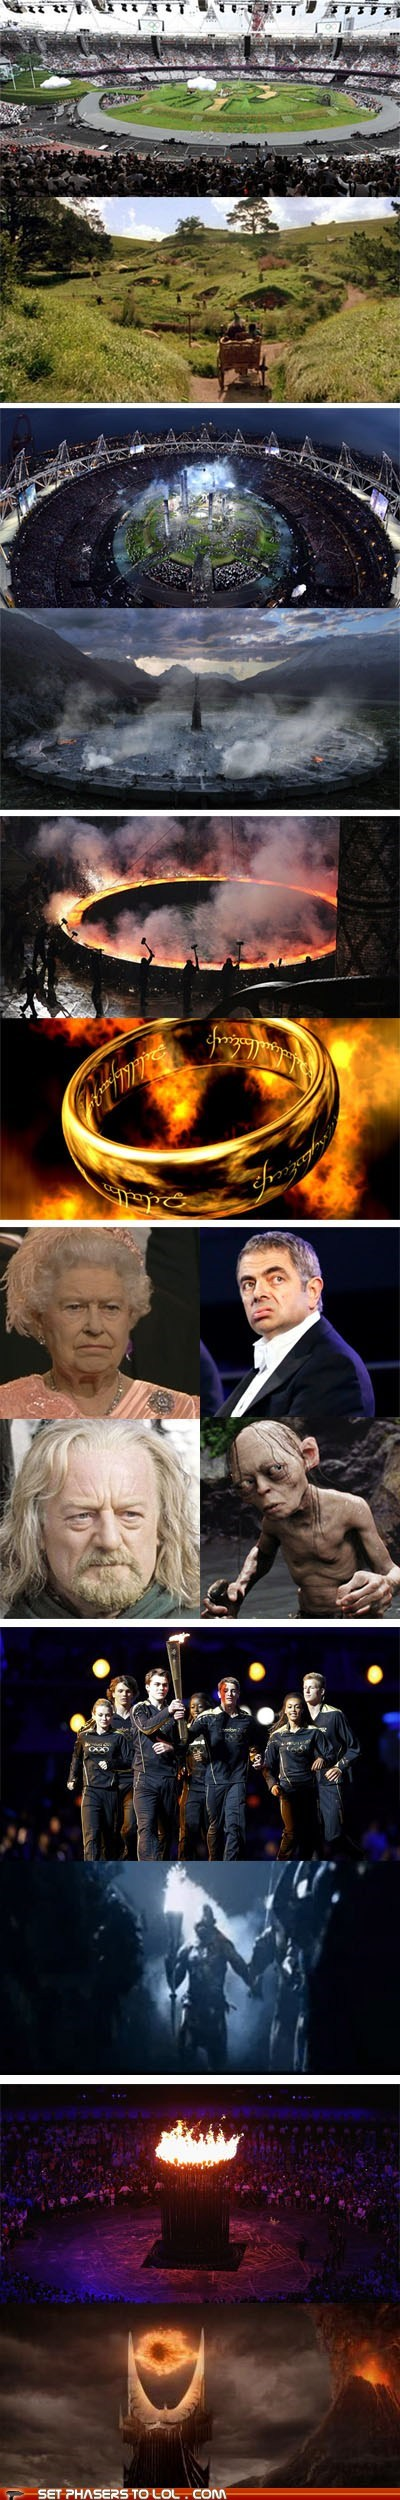 best of the week gollum London 2012 Lord of The Ring Lord of the Rings mordor mr-bean olympics opening ceremony Queen Elizabeth II rowan atkinson sauron similar Sméagol The Shire totally looks like